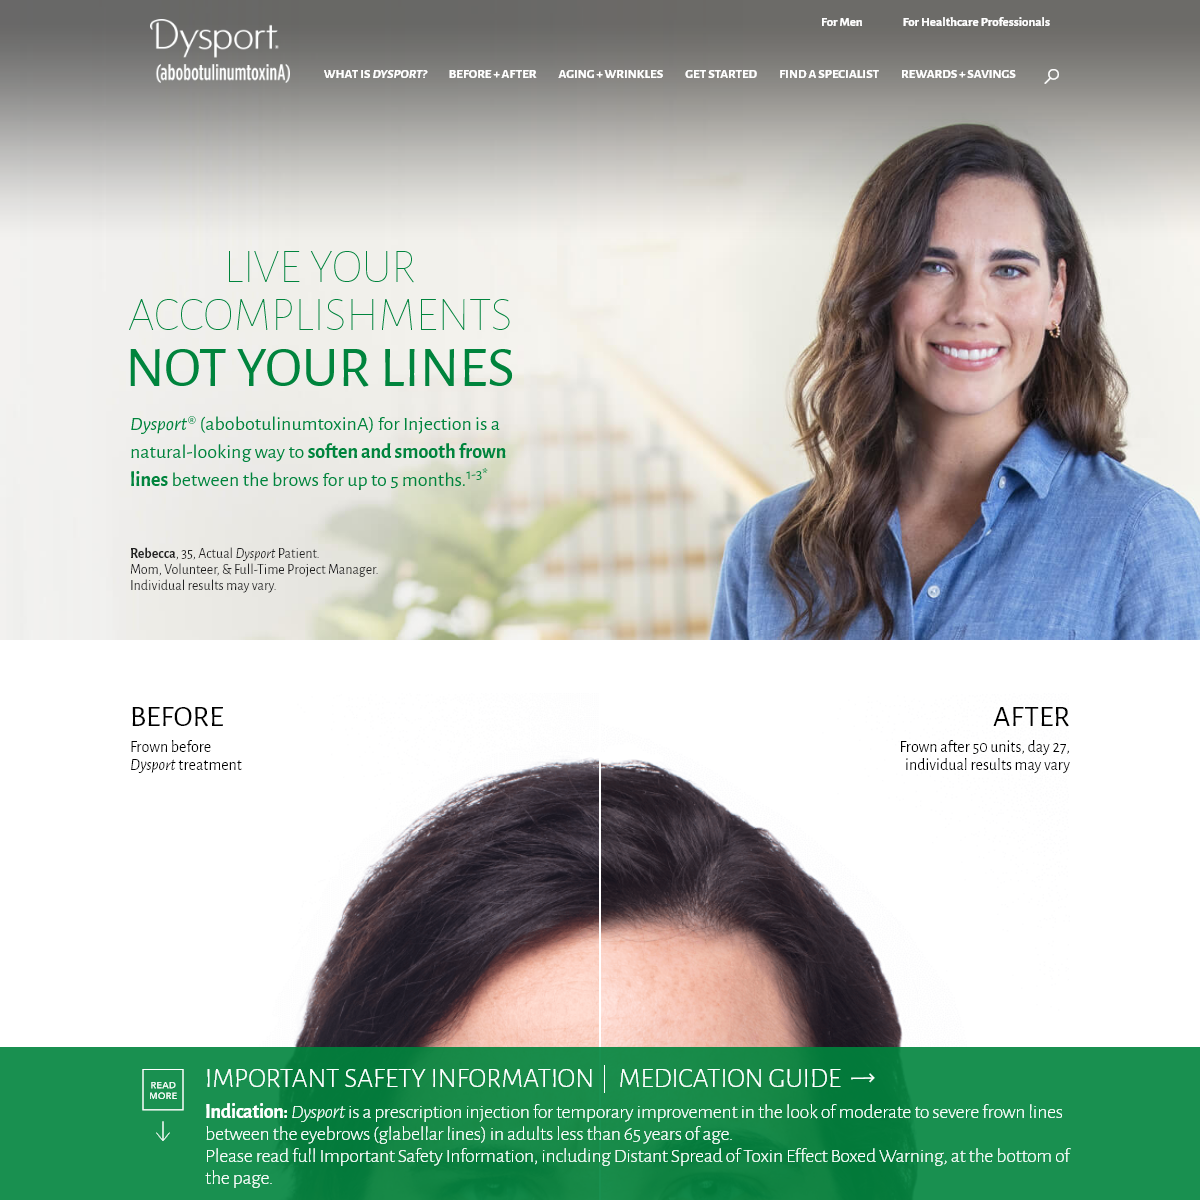 Treatment for Lines Between the Brows - Dysport®